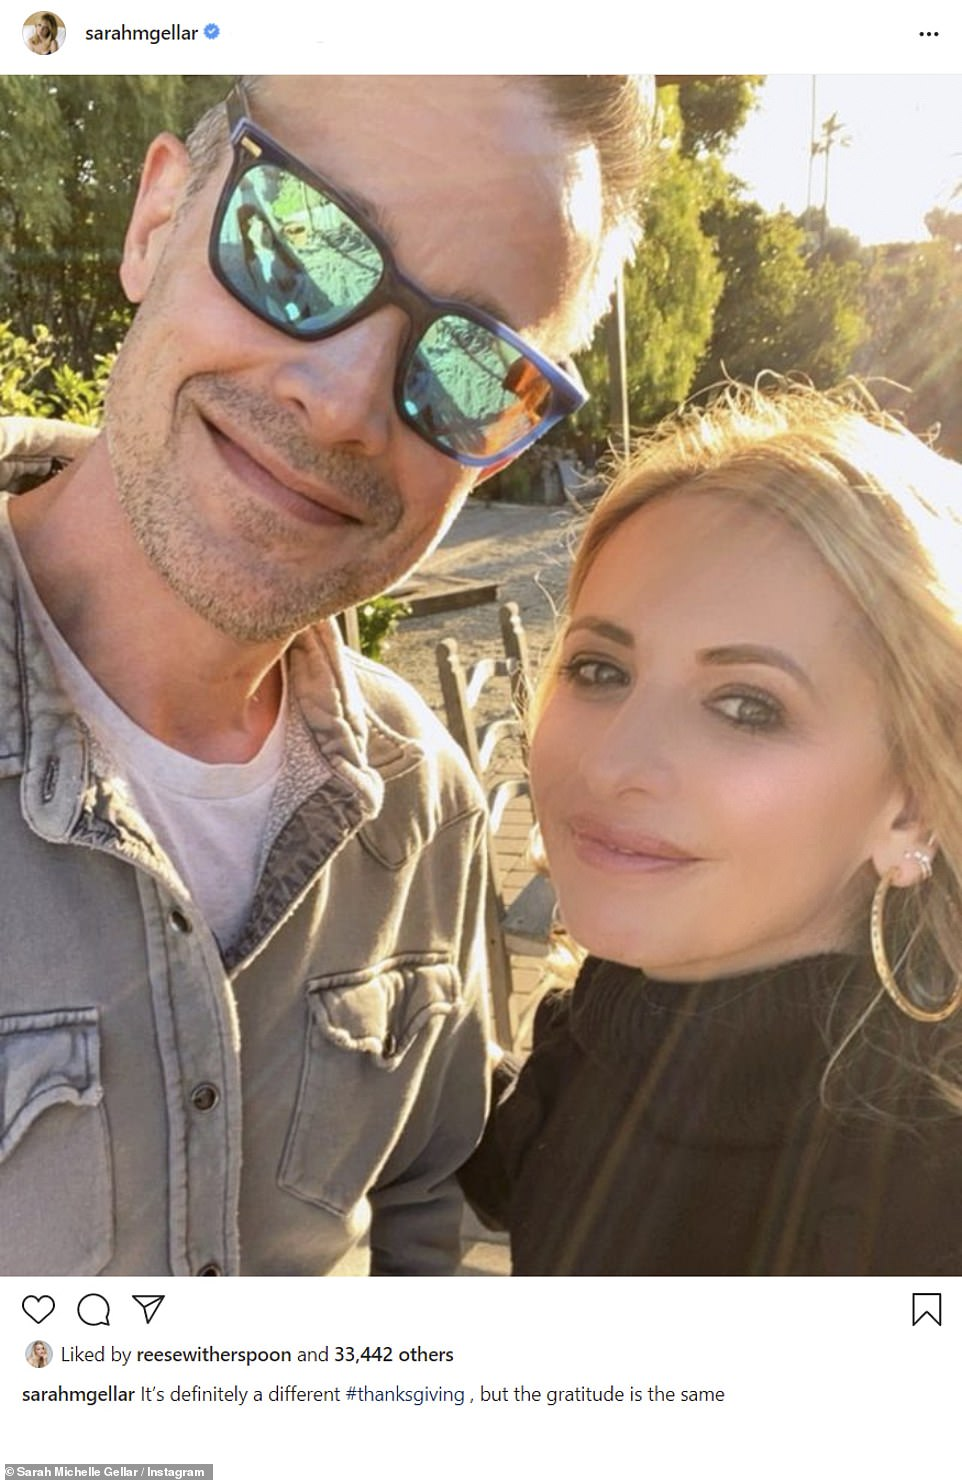 Sweet: Sarah Michelle Gellar and husband Freddie Prinze Jr. posted a sweet selfie together